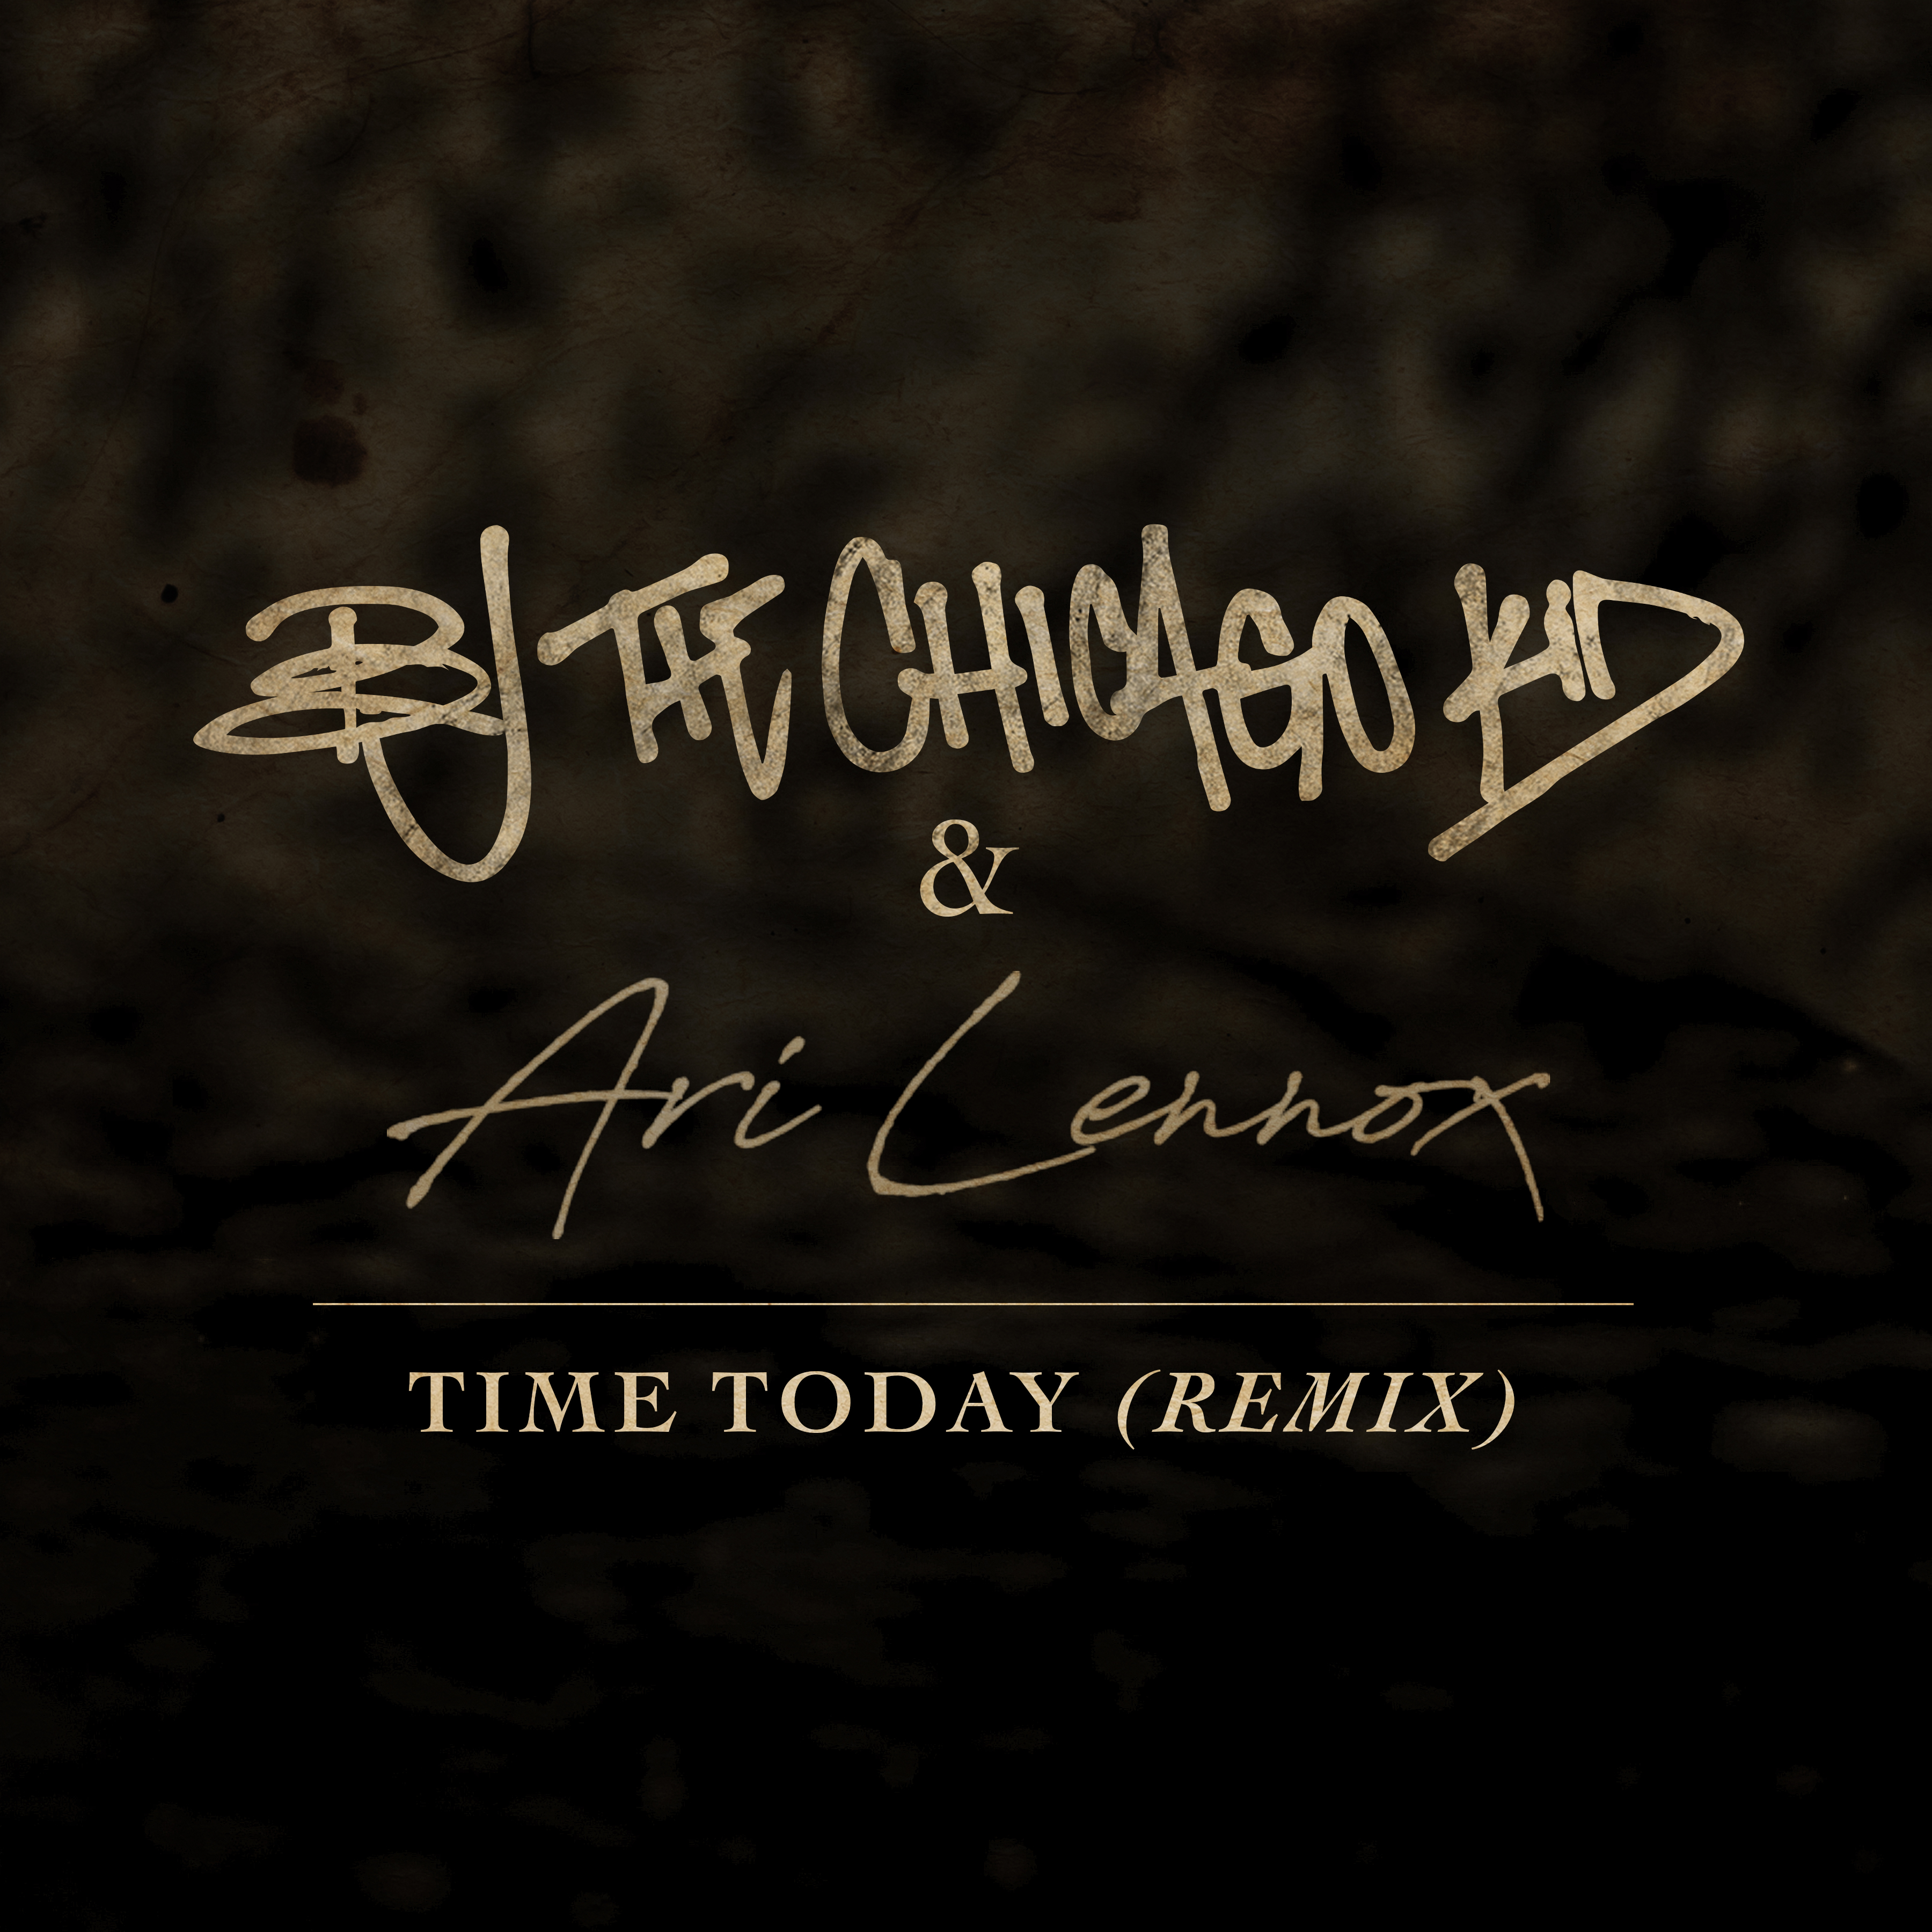 BJ the Chicago Kid Time Today Remix